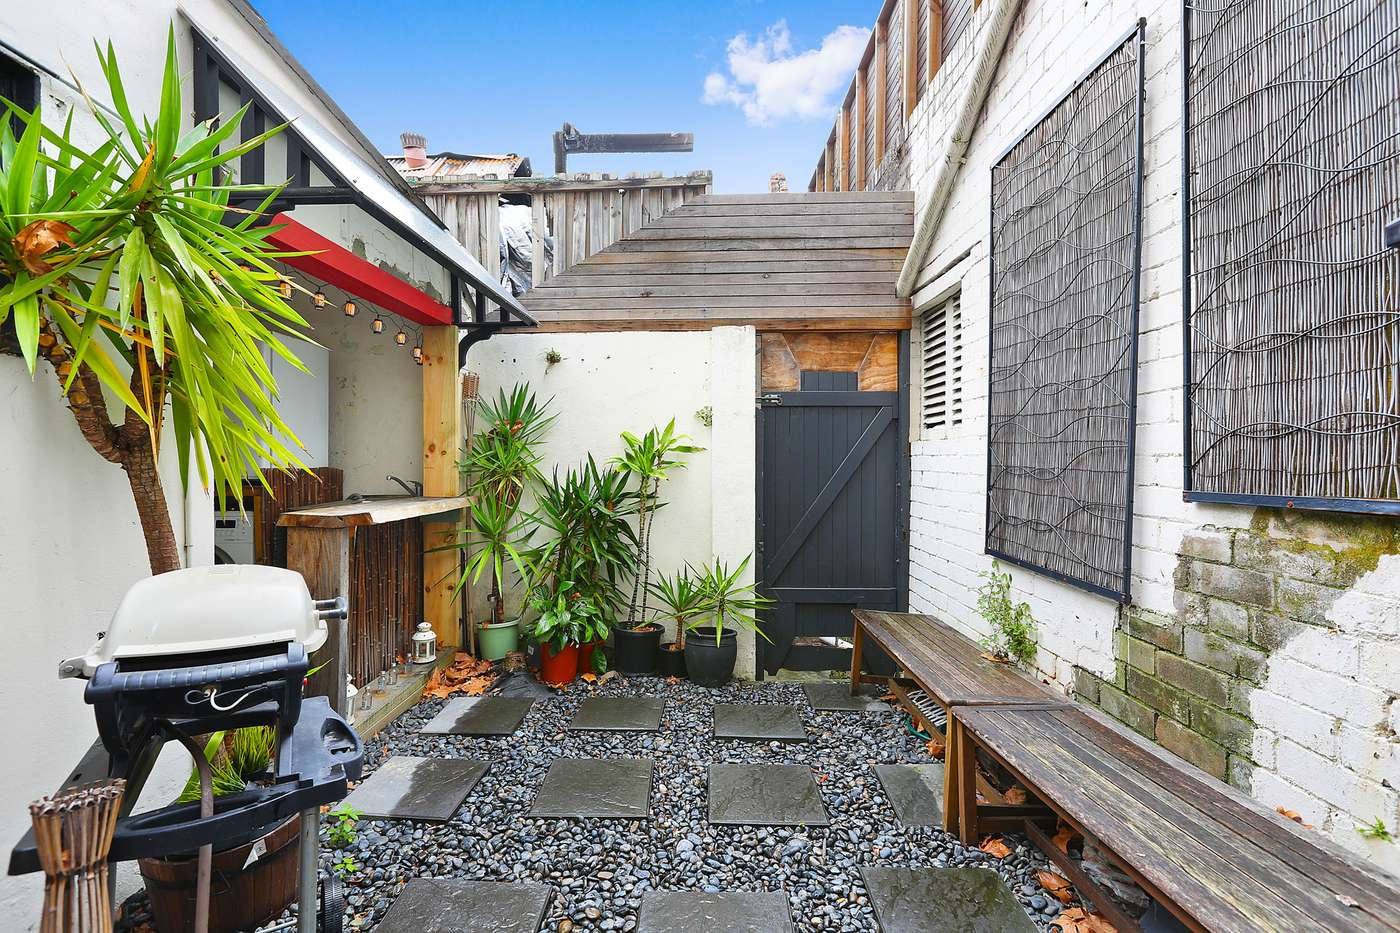 Main view of Homely terrace listing, 323 Riley Street, Surry Hills, NSW 2010